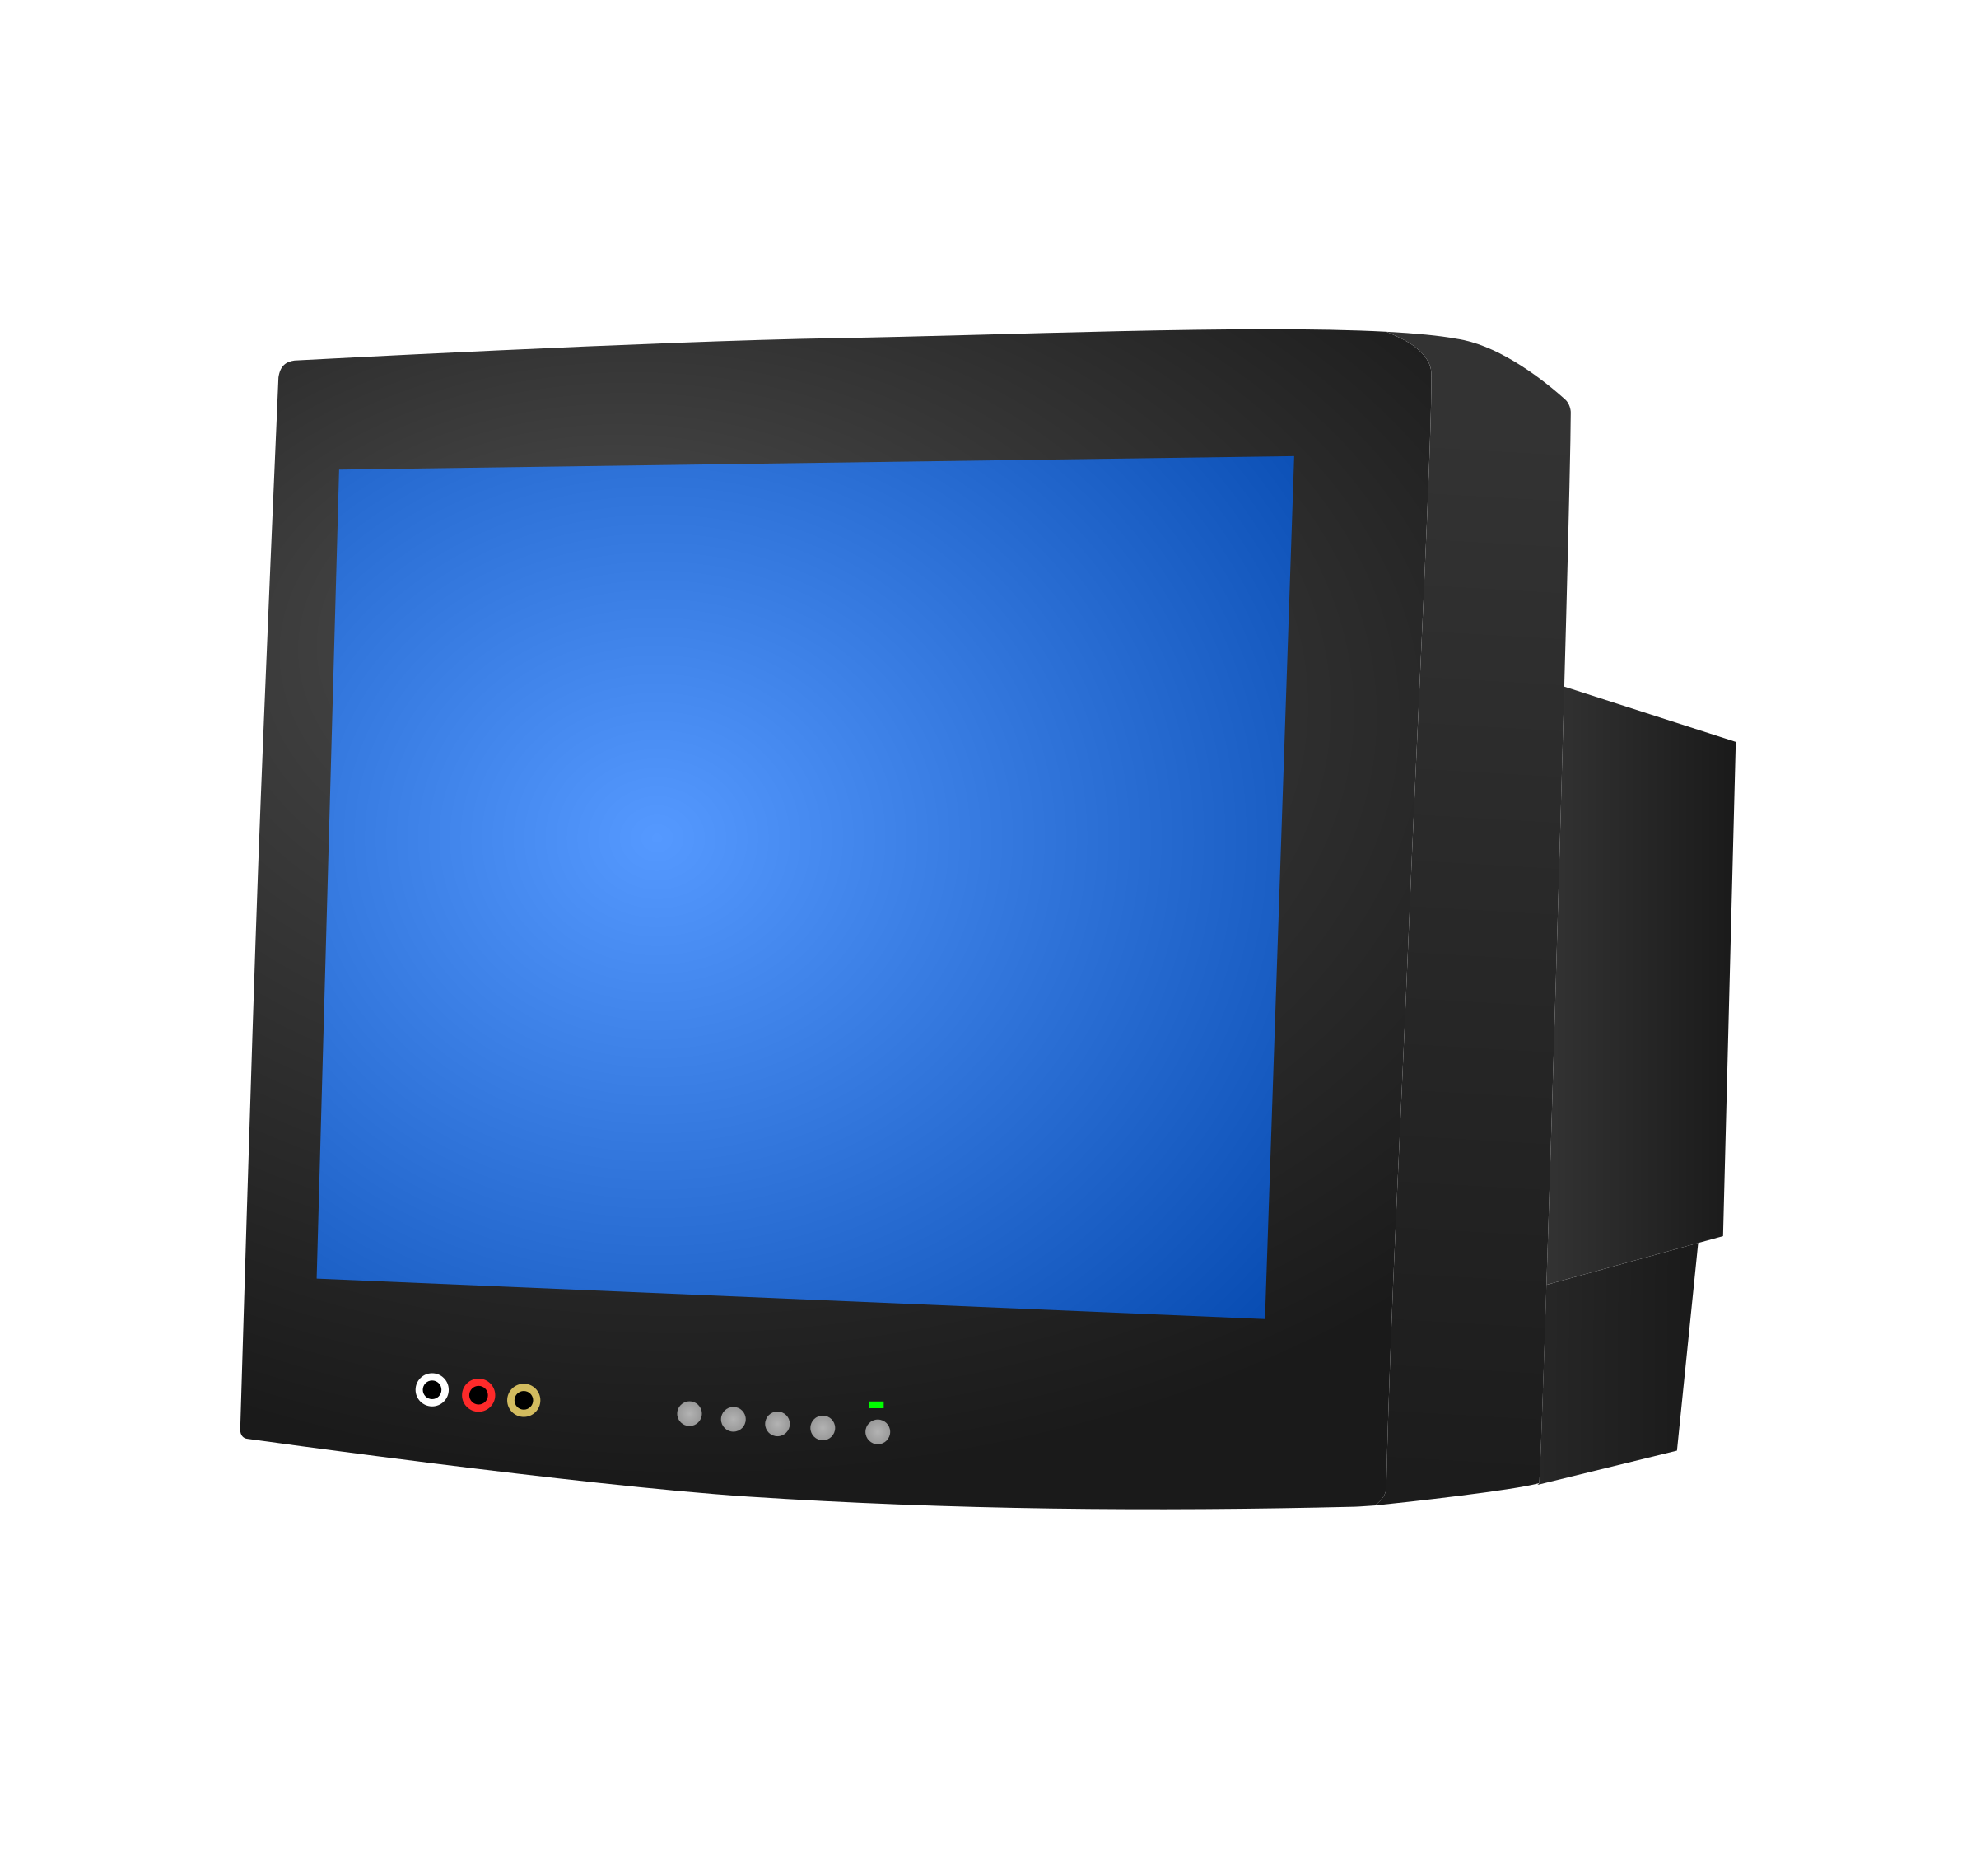 Crt icons free and. Tv png free stock